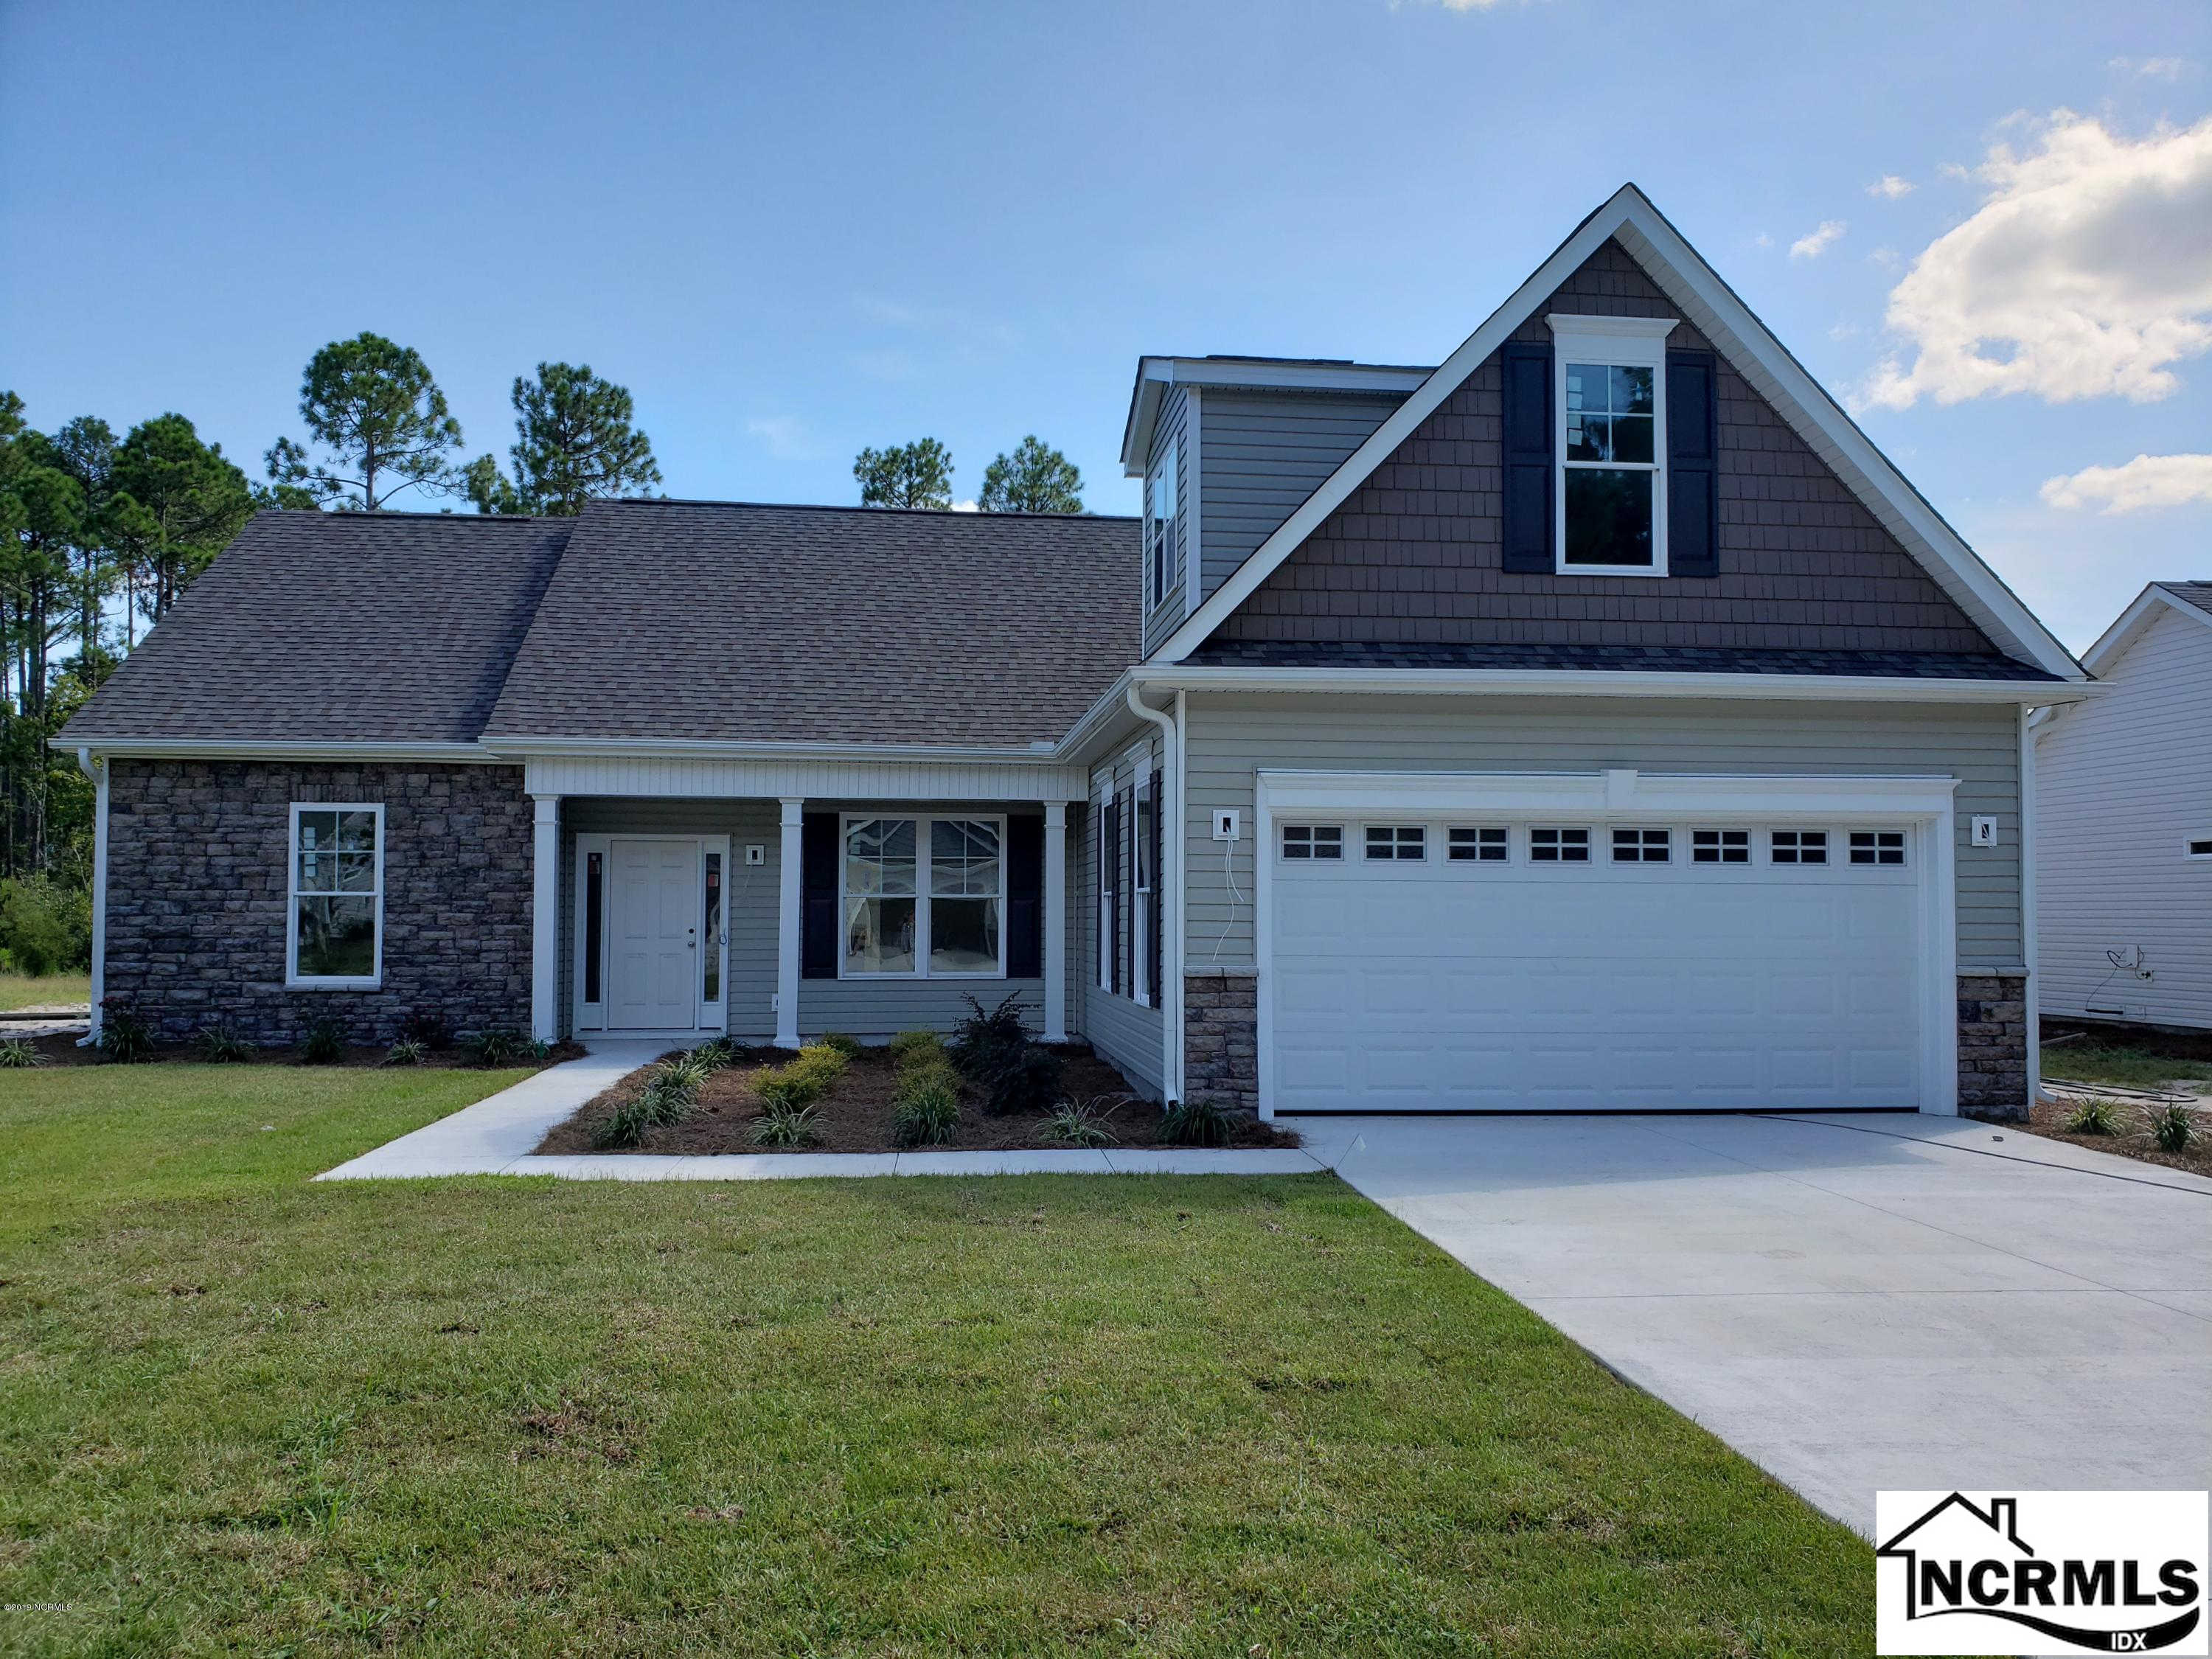 15 Edinburgh Drive NW, Shallotte, NC 28470 now has a new price of $256,425!